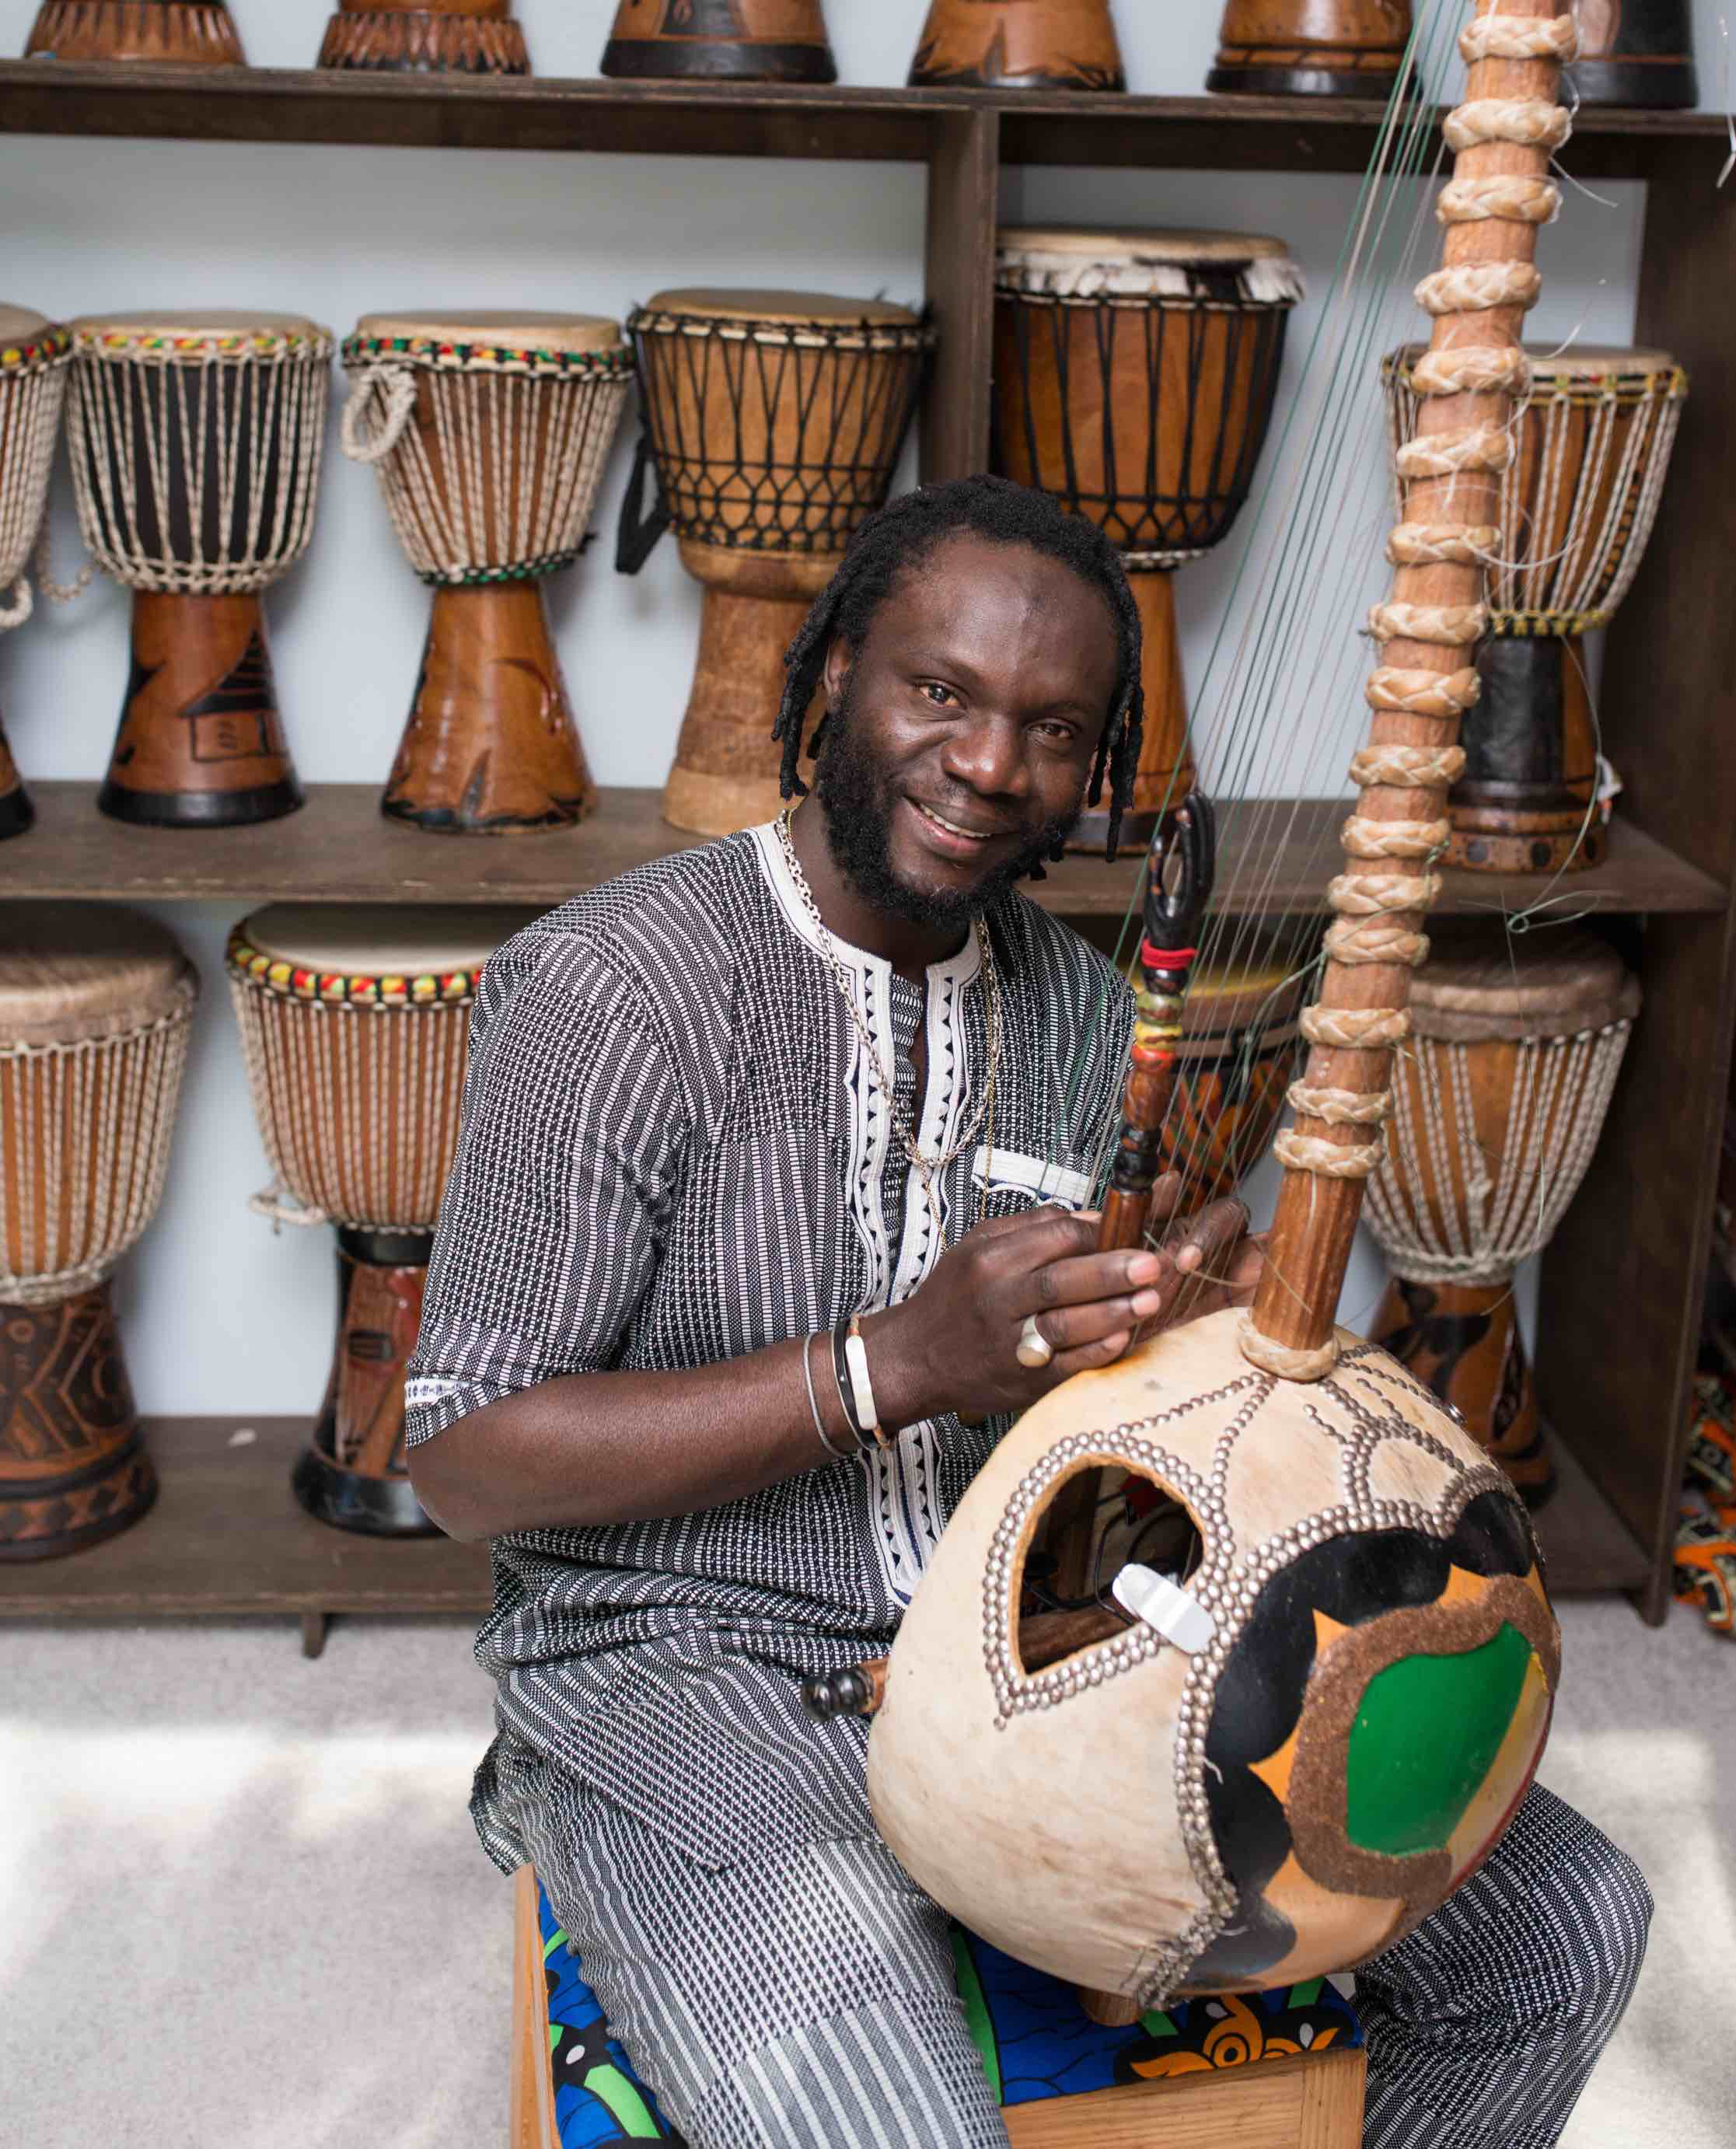 Diali Cisshiko with his collection of traditional drums and the kora.